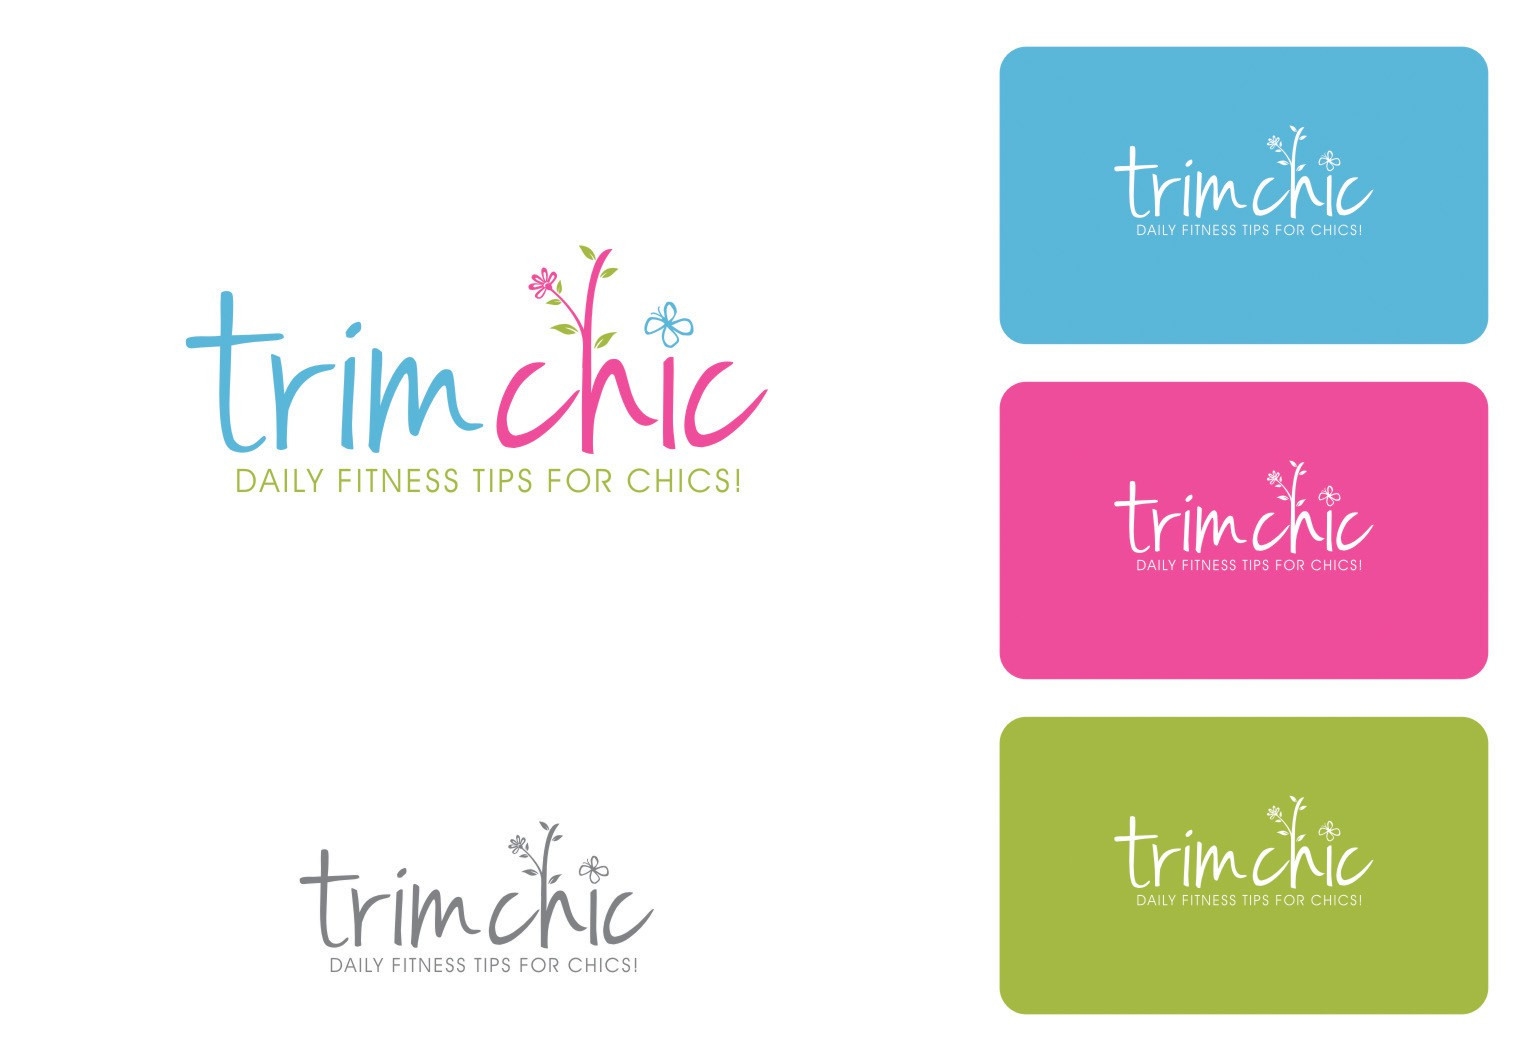 New logo wanted for TrimChic.com